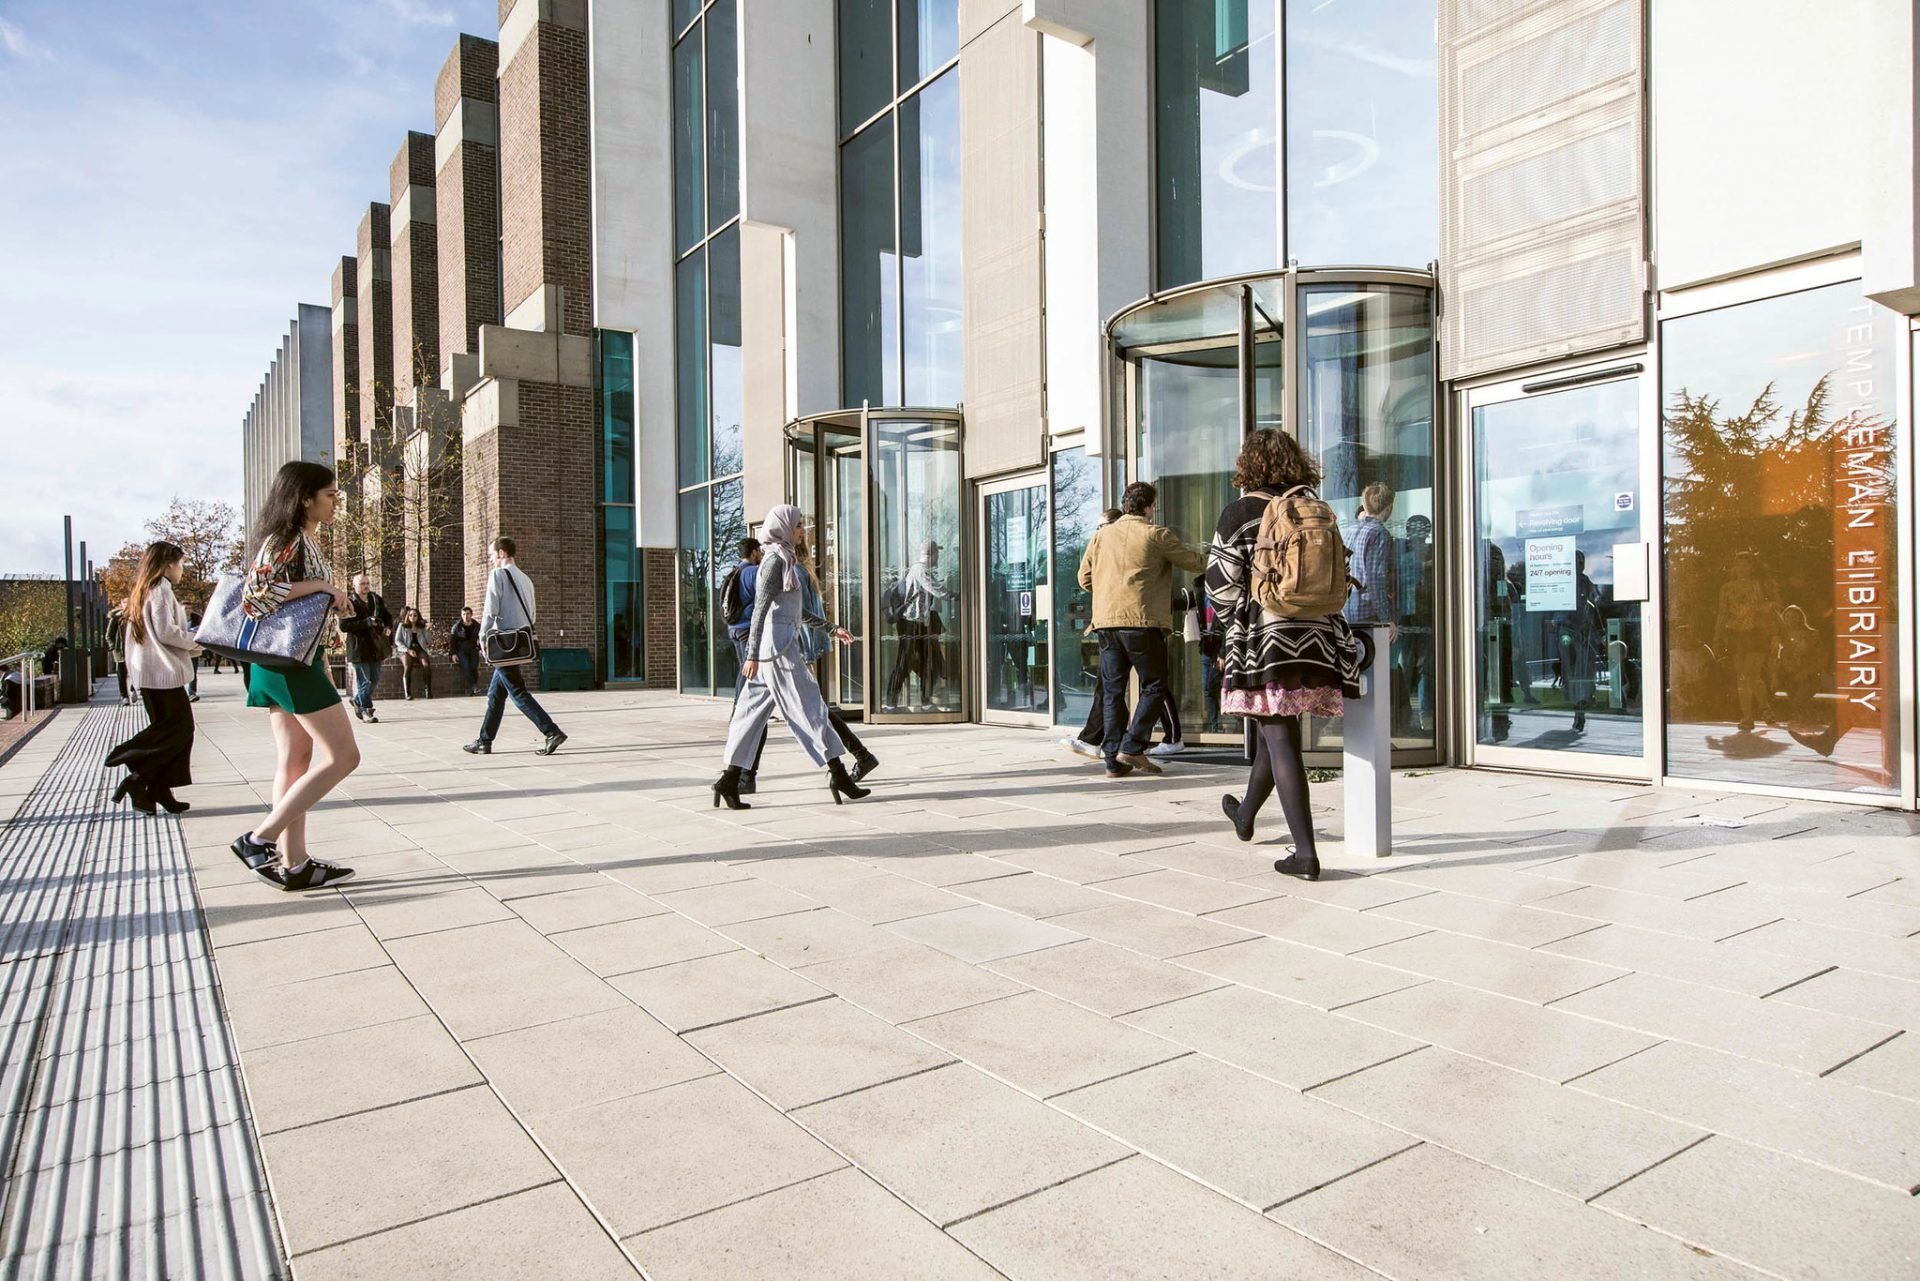 The entrance to the Templeman library